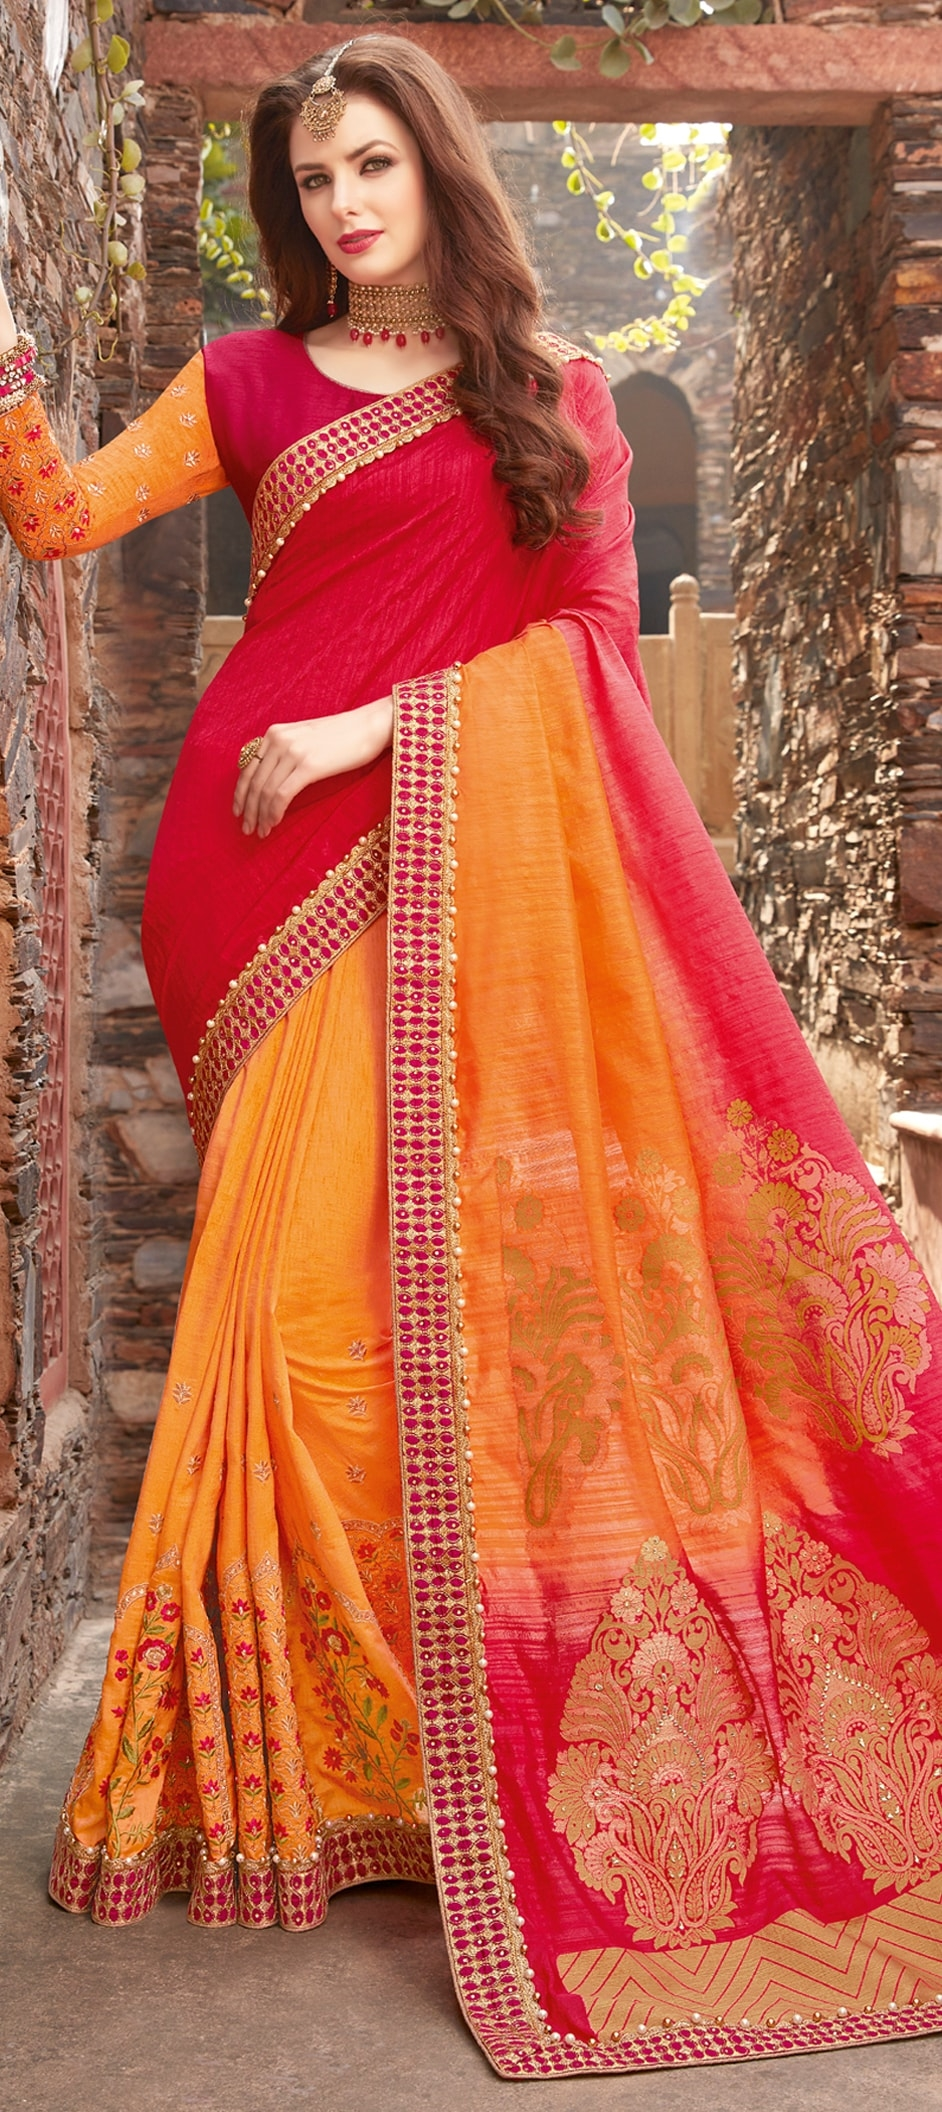 774155: Orange, Red and Maroon color family Embroidered Sarees ...